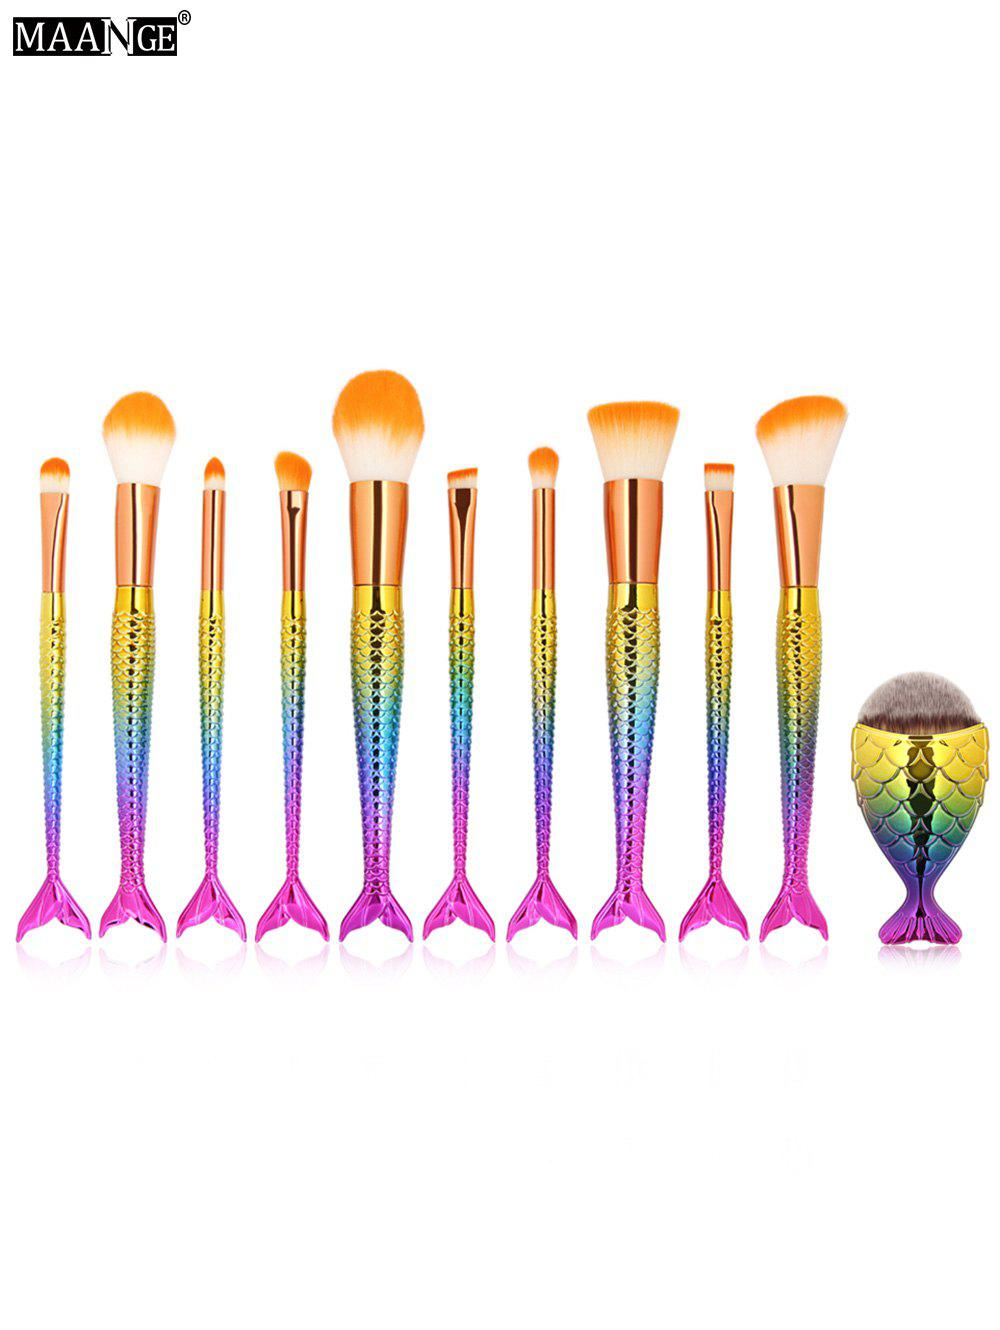 Discount MAANGE 11Pcs Mermaid Tail Makeup Brushes with Chunky Foundation Brush